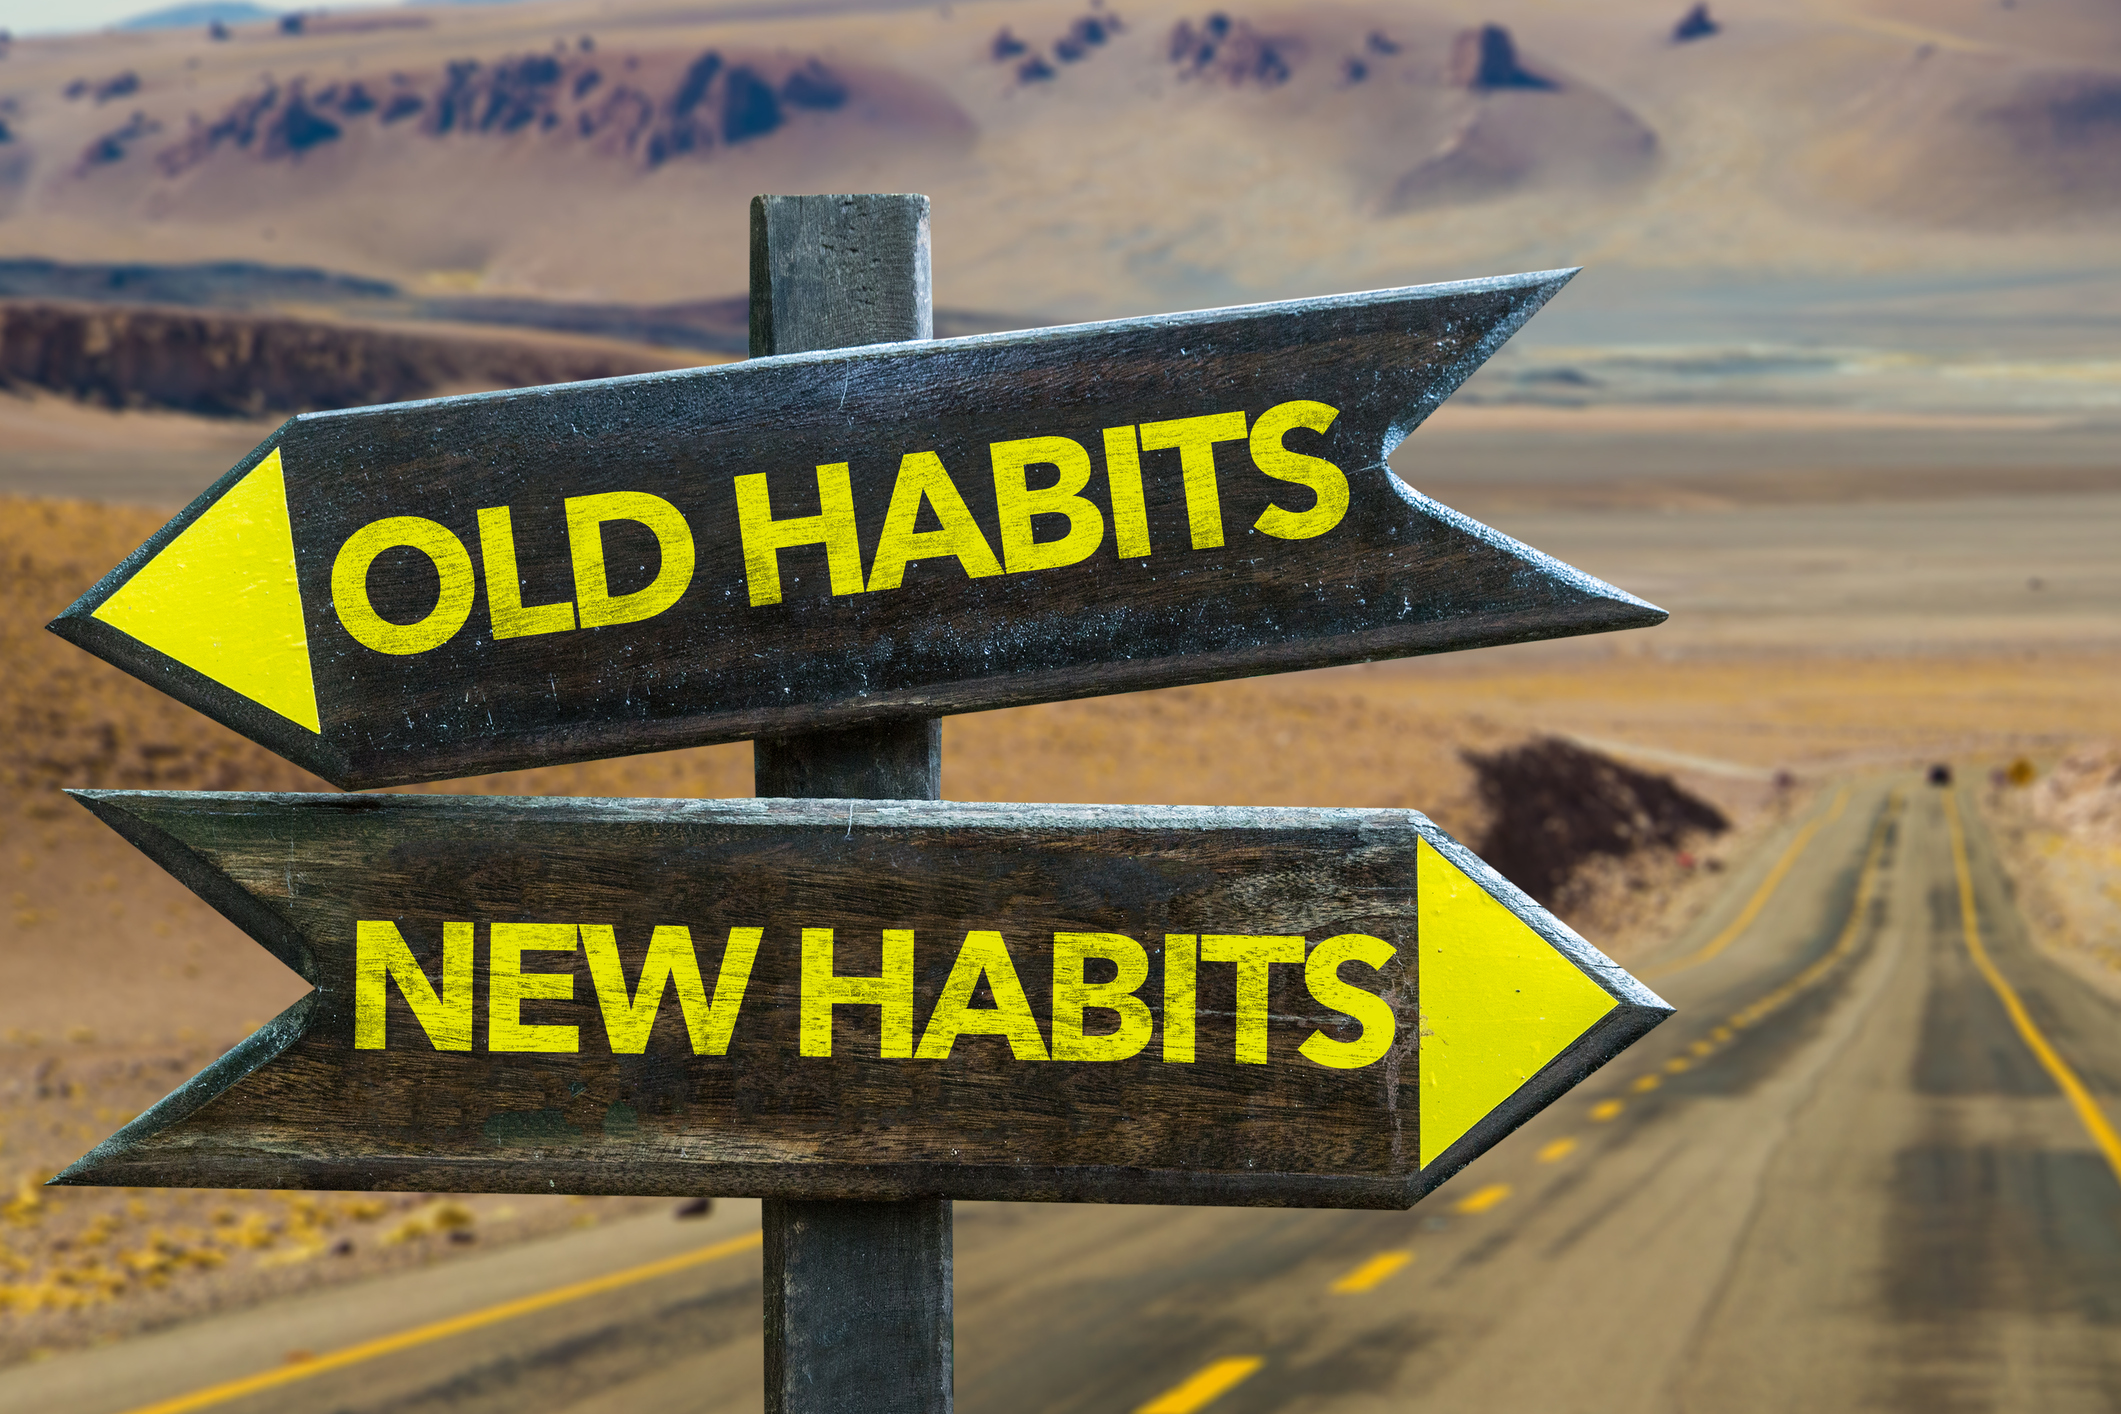 New Habits signpost